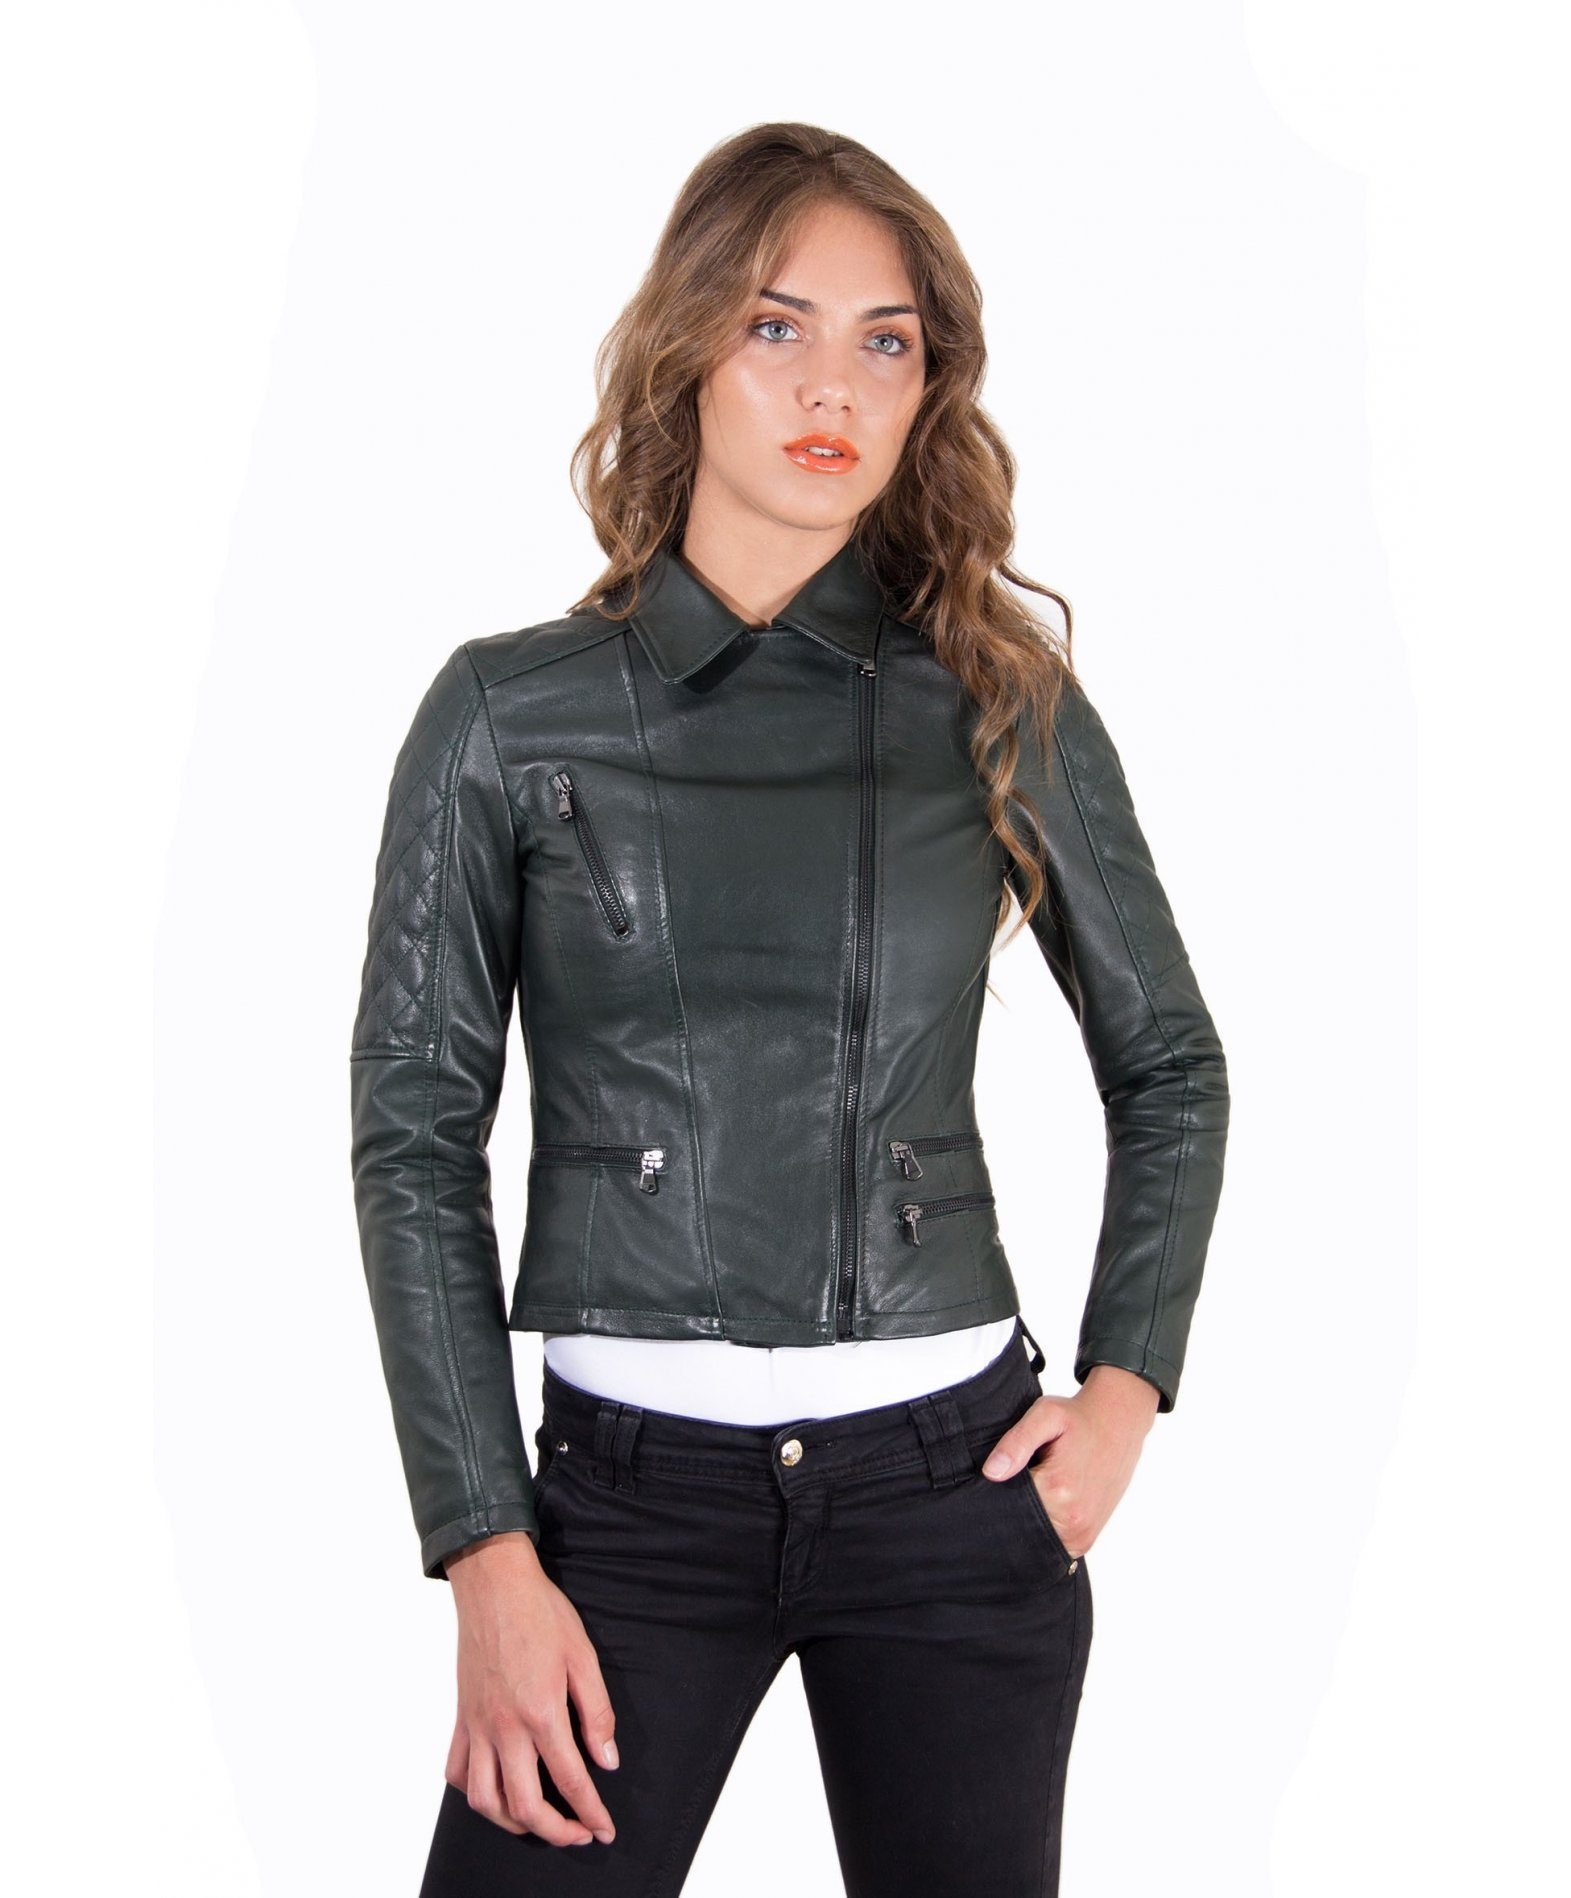 the latest 75d32 475d6 NADIA • colore verde • giacca chiodo in pelle trapuntata ...